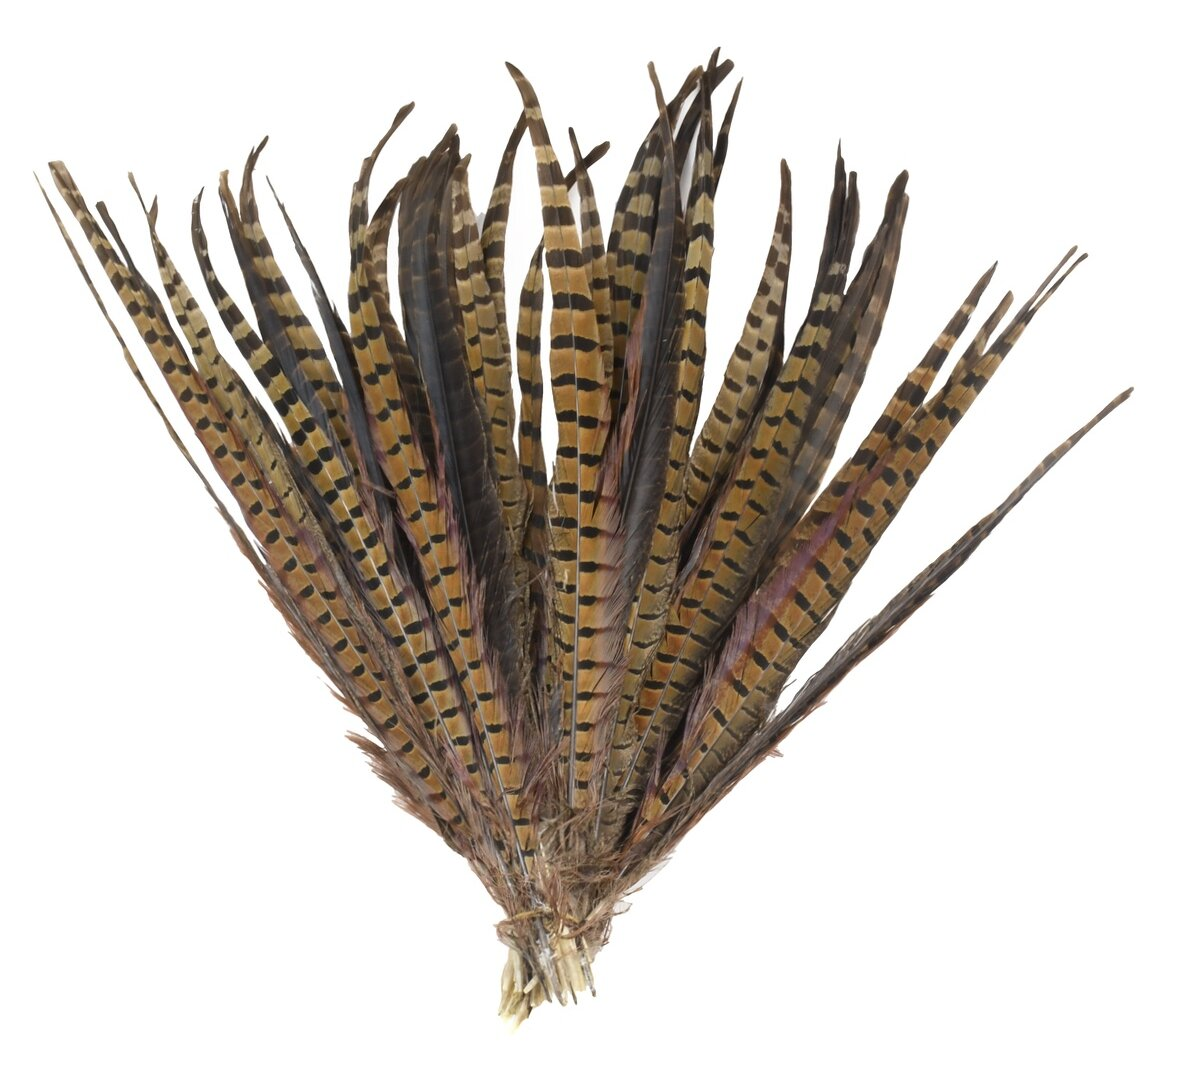 Fern Feather Decor Decorative Objects You Ll Love In 2021 Wayfair